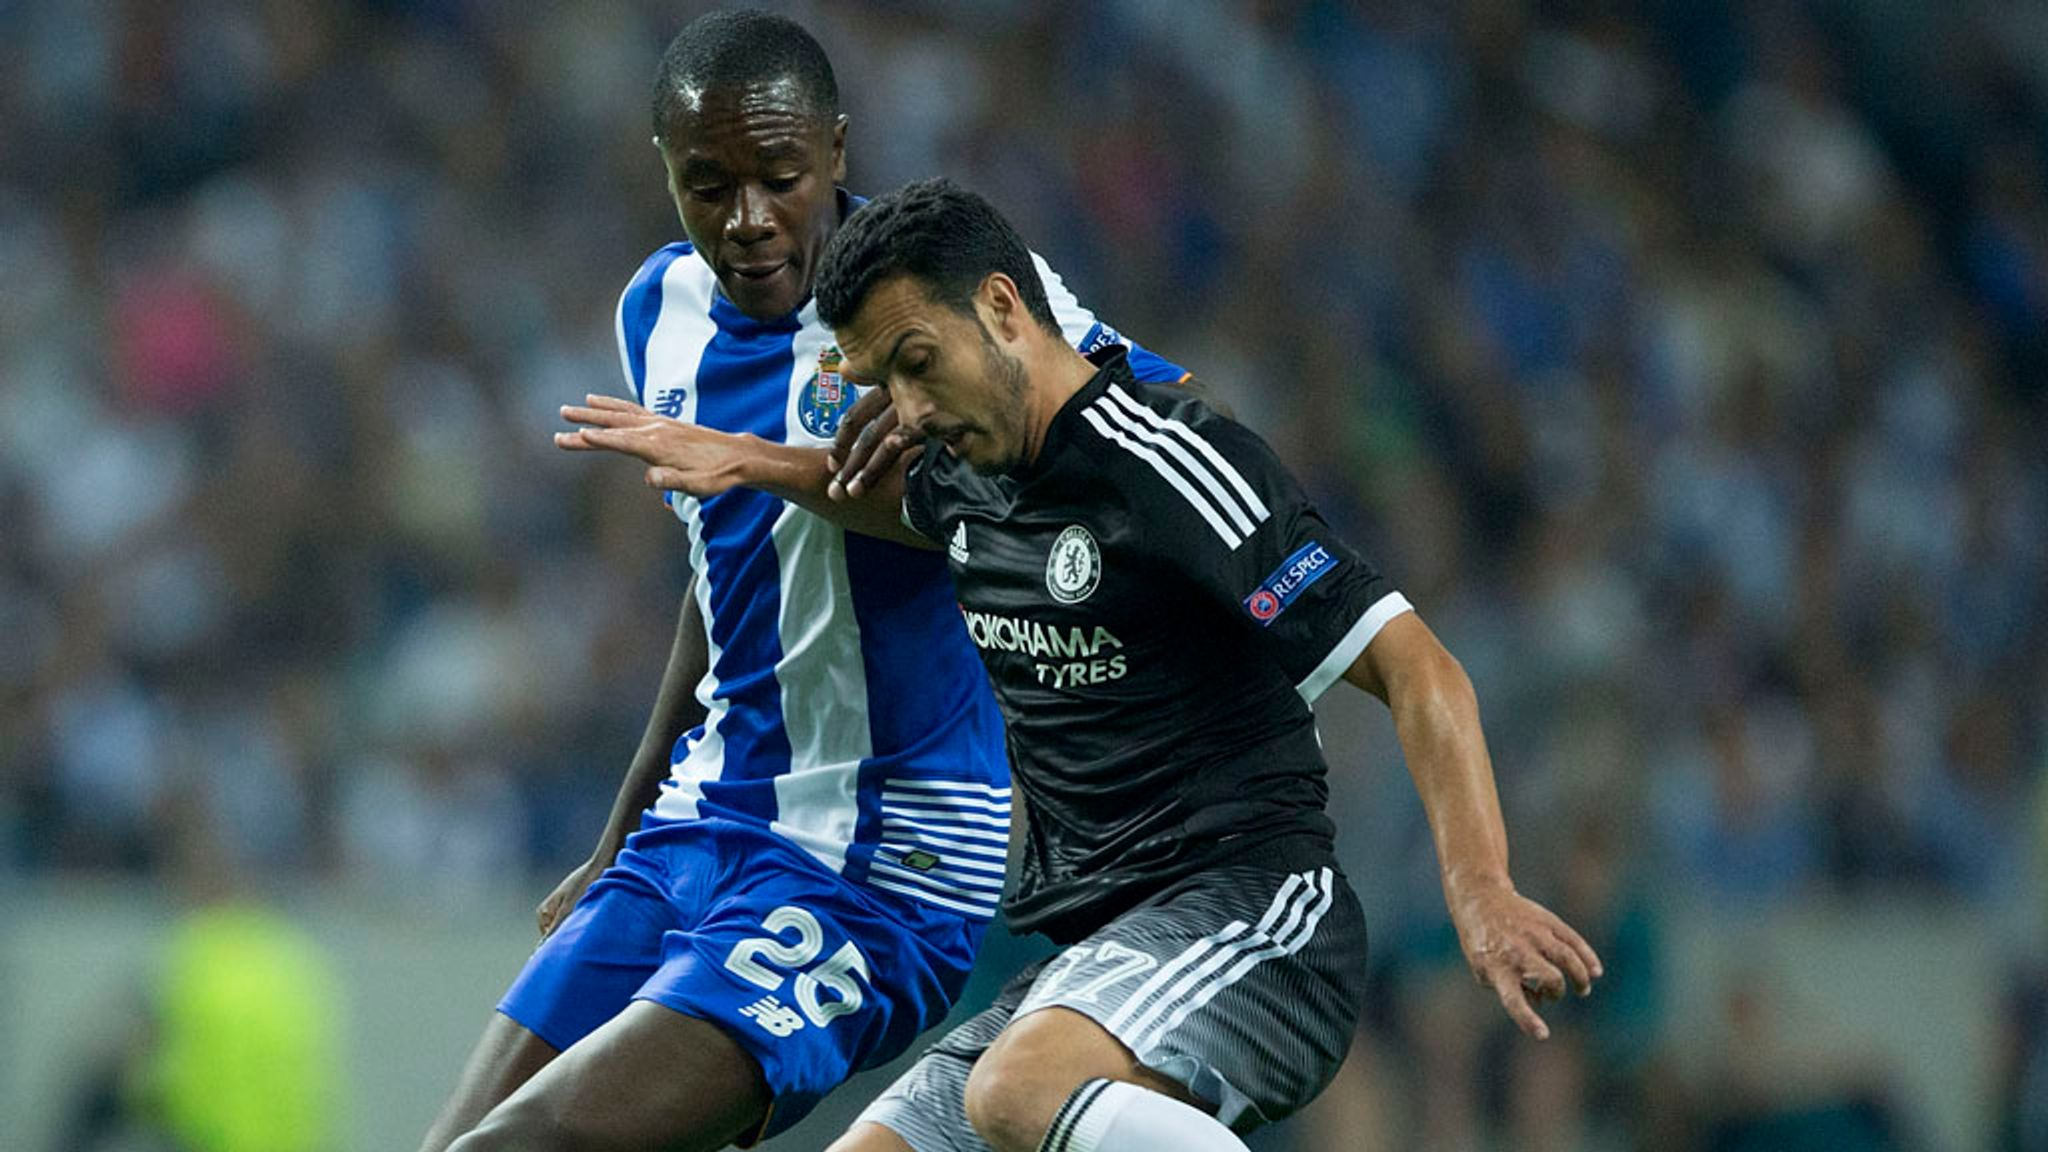 FC Porto 2 - 1 Chelsea - Match Report & Highlights